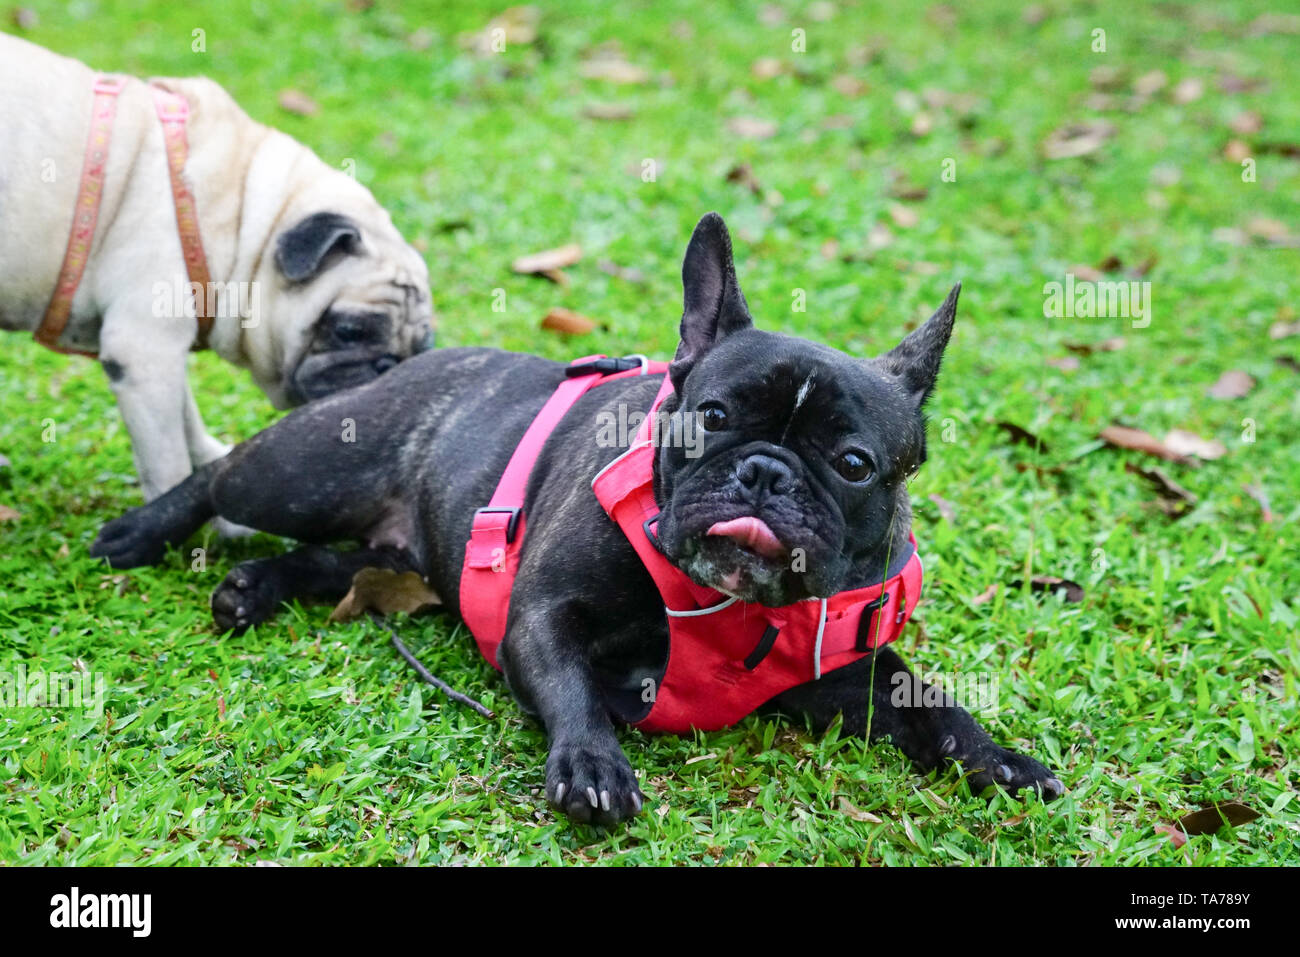 Black French Bulldog relaxing on a green field, socializing with a pug - Stock Image